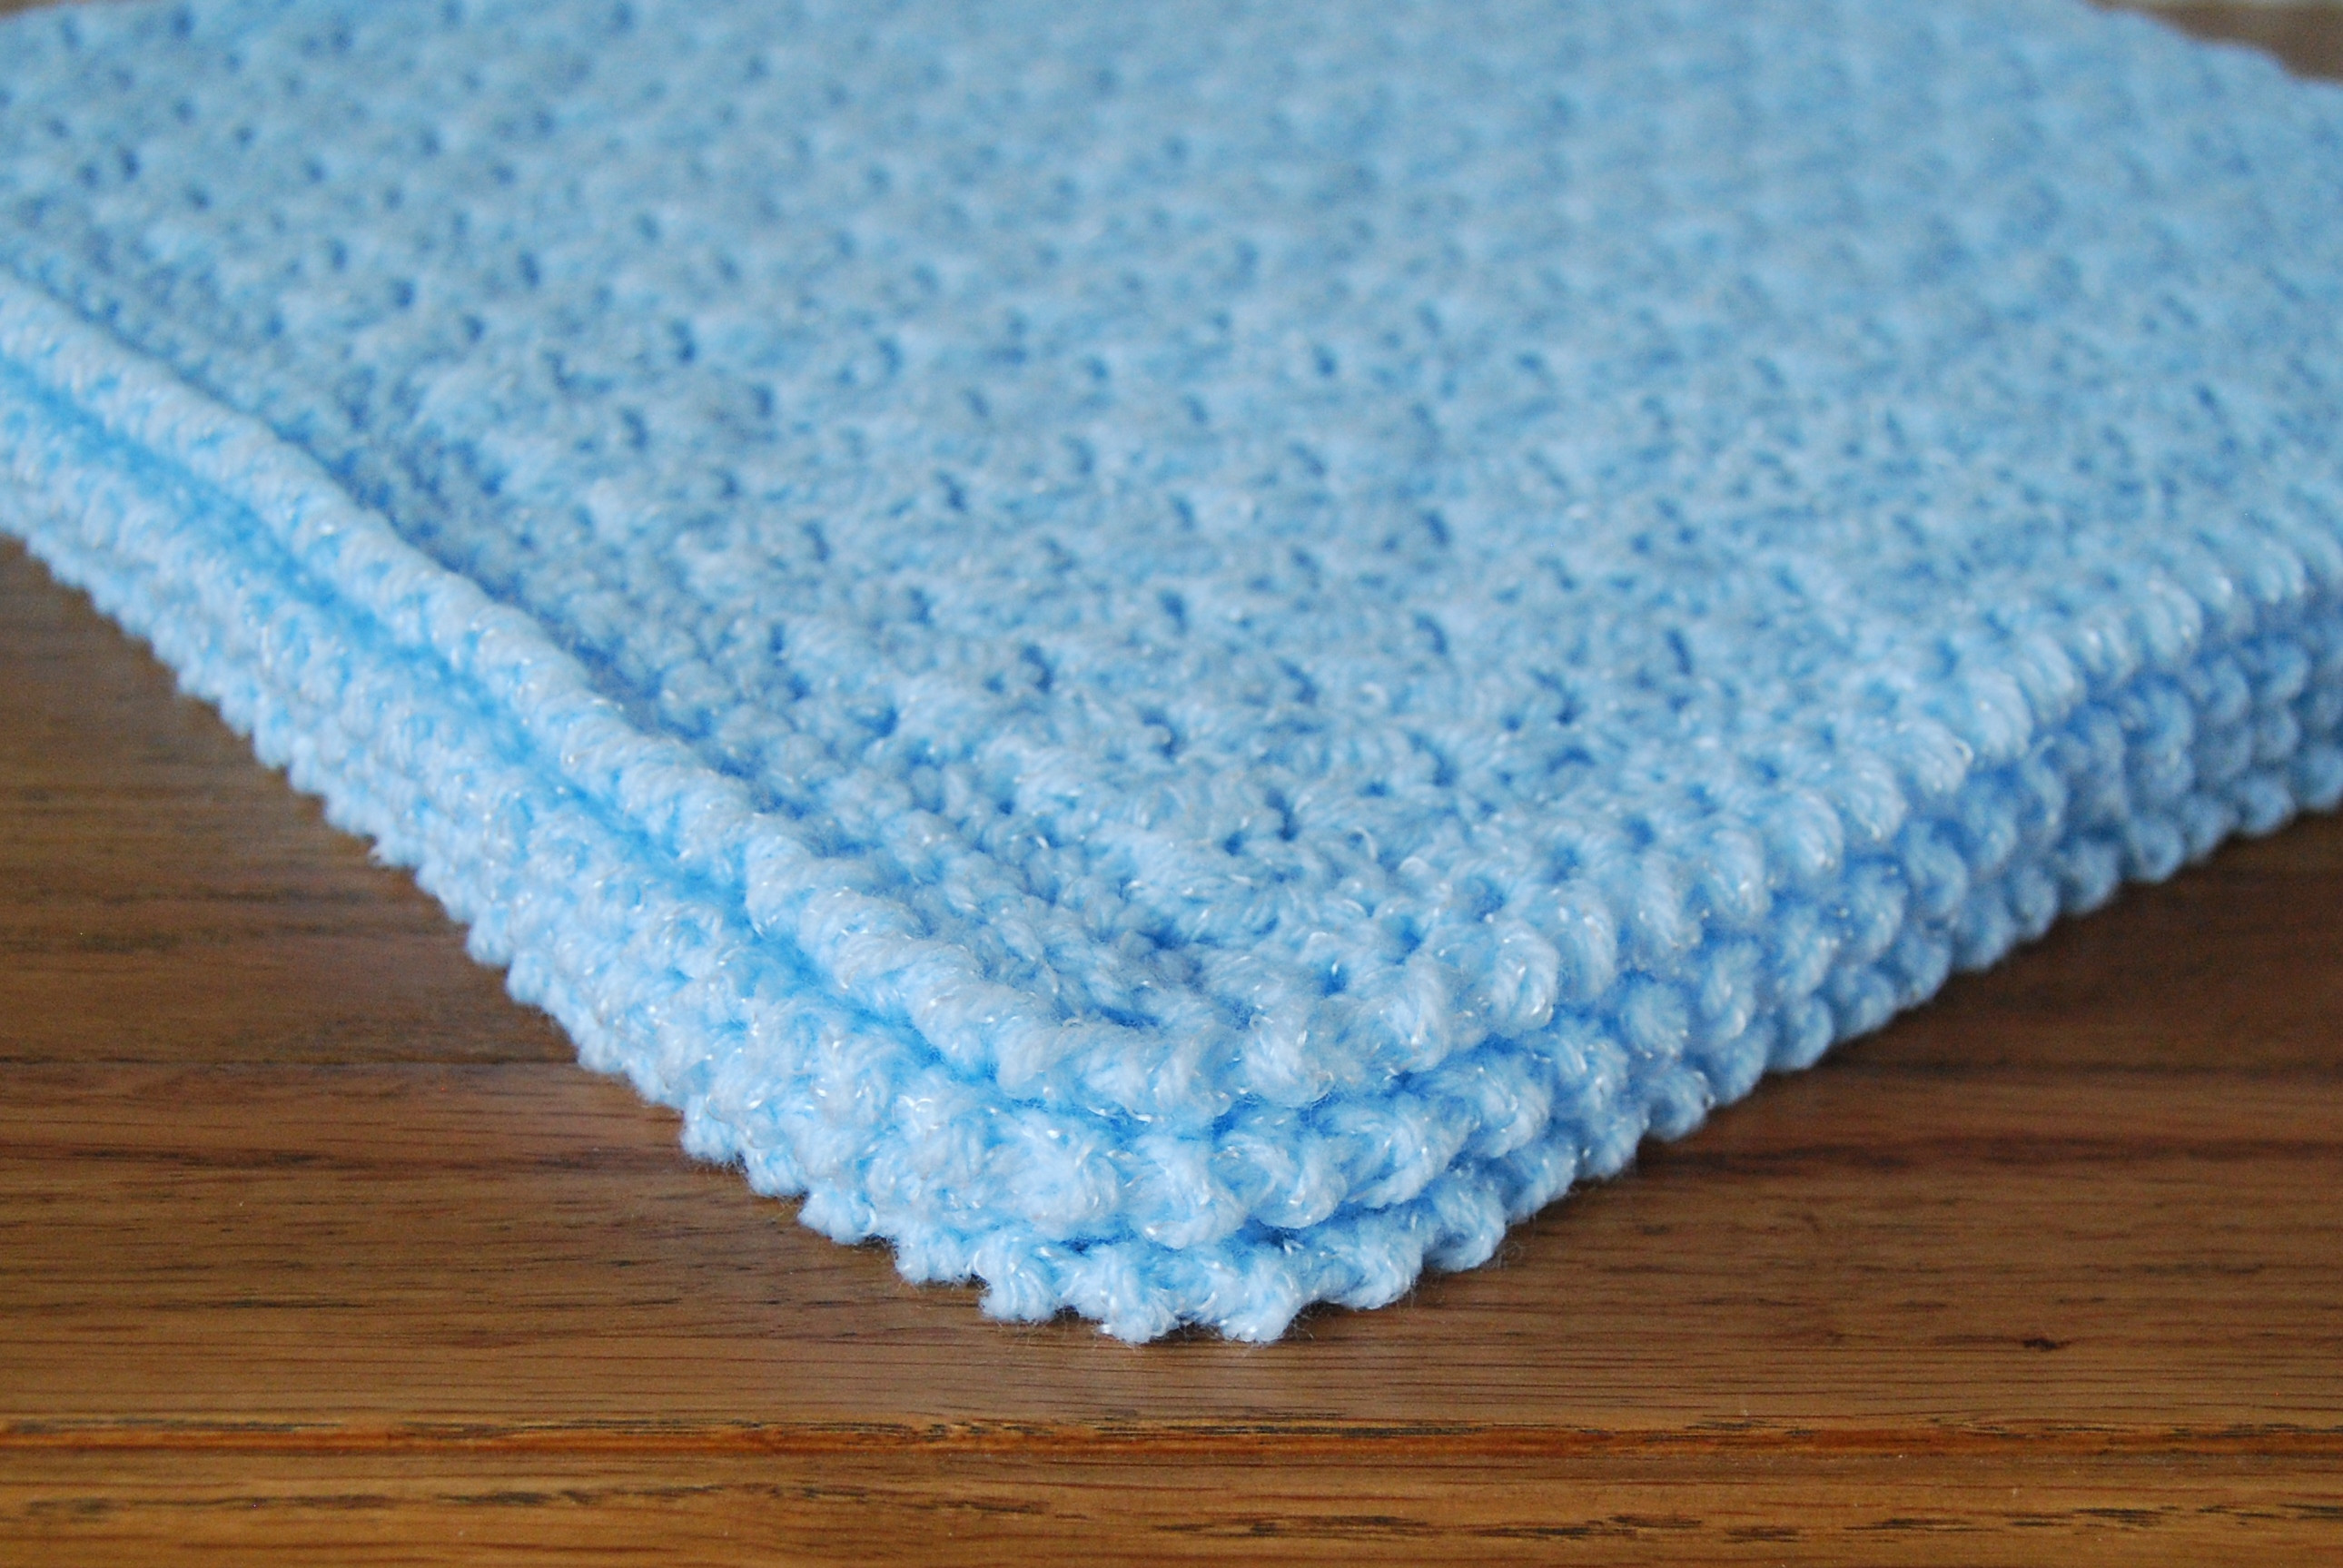 Baby Boy Crochet Blanket Patterns Lovely Beautiful Baby Boy Blanket Crochet Pattern for Pram Of Baby Boy Crochet Blanket Patterns Beautiful Pics for Crochet Baby Boy Blanket Patterns